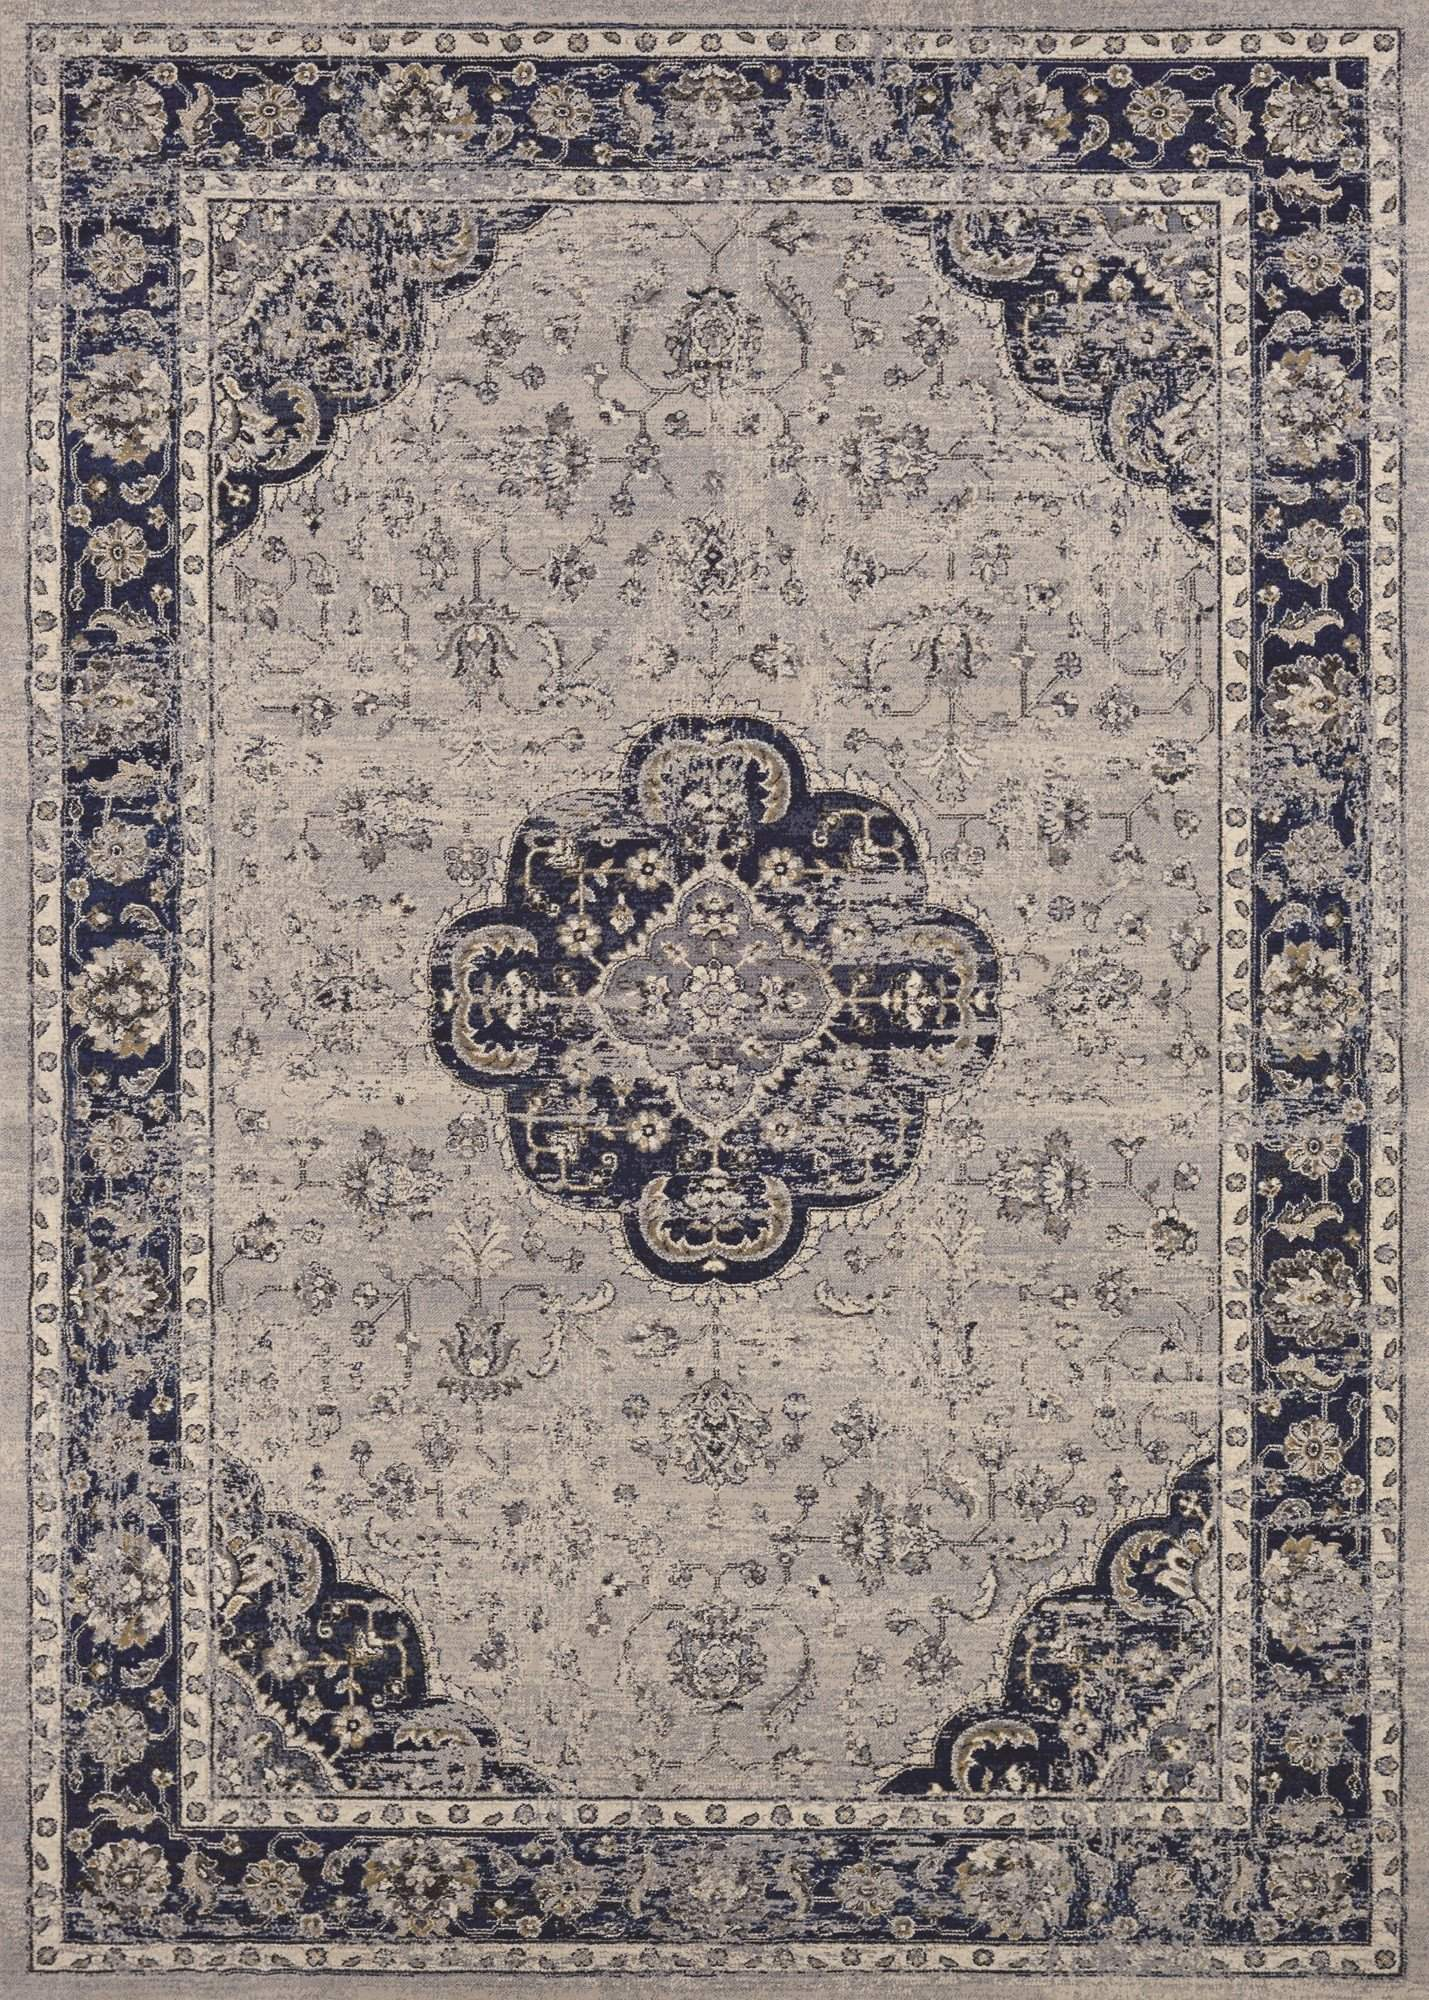 Sultan Treasures Clover Medallion Area Rugs-Area Rugs-Rug Shop and More